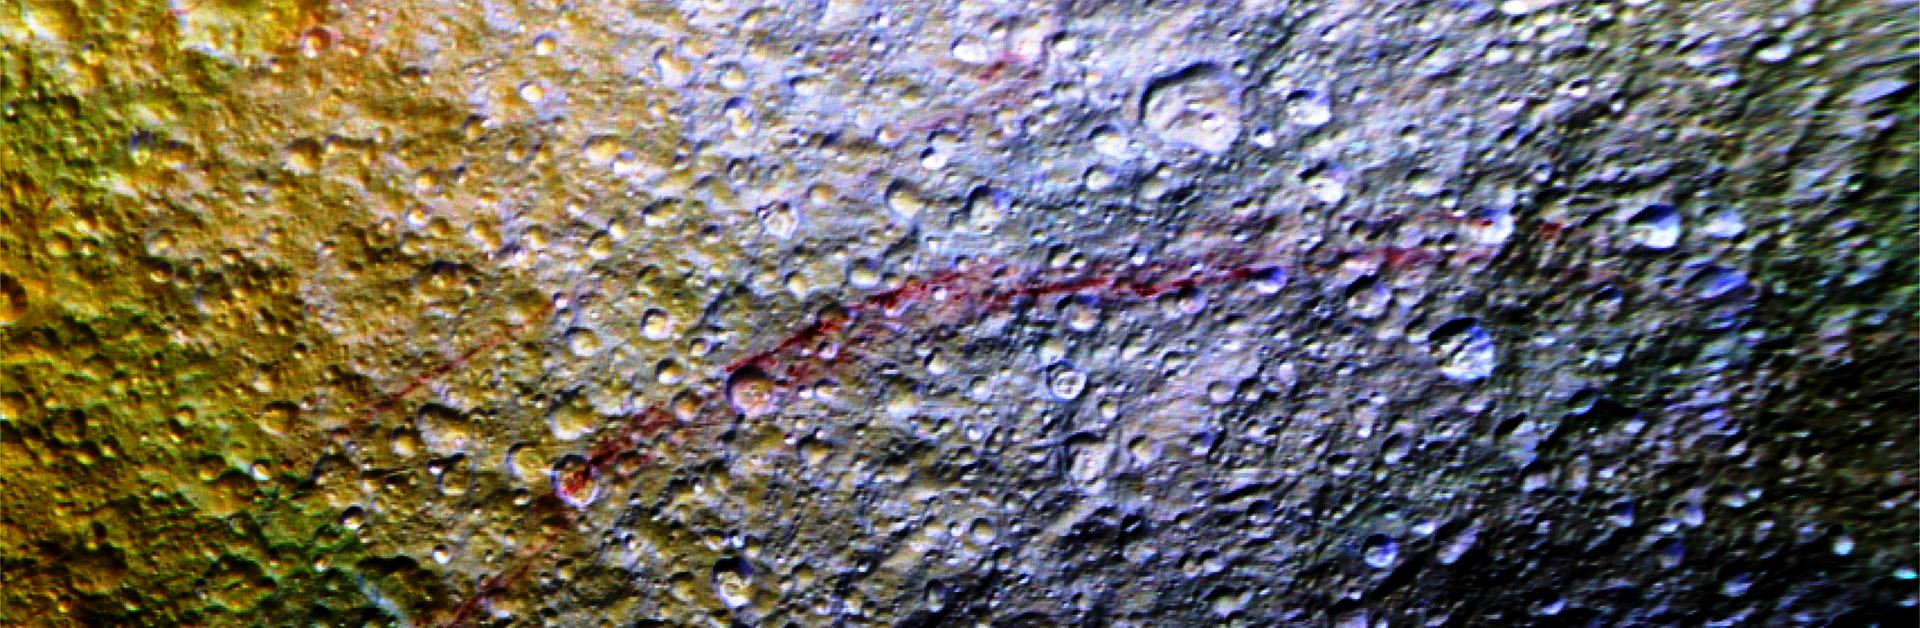 Red Streaks across the surface of Tethys NASA JPL Caltech Space Science Institute 2 photo posted on SpaceFlight Insider - Copy